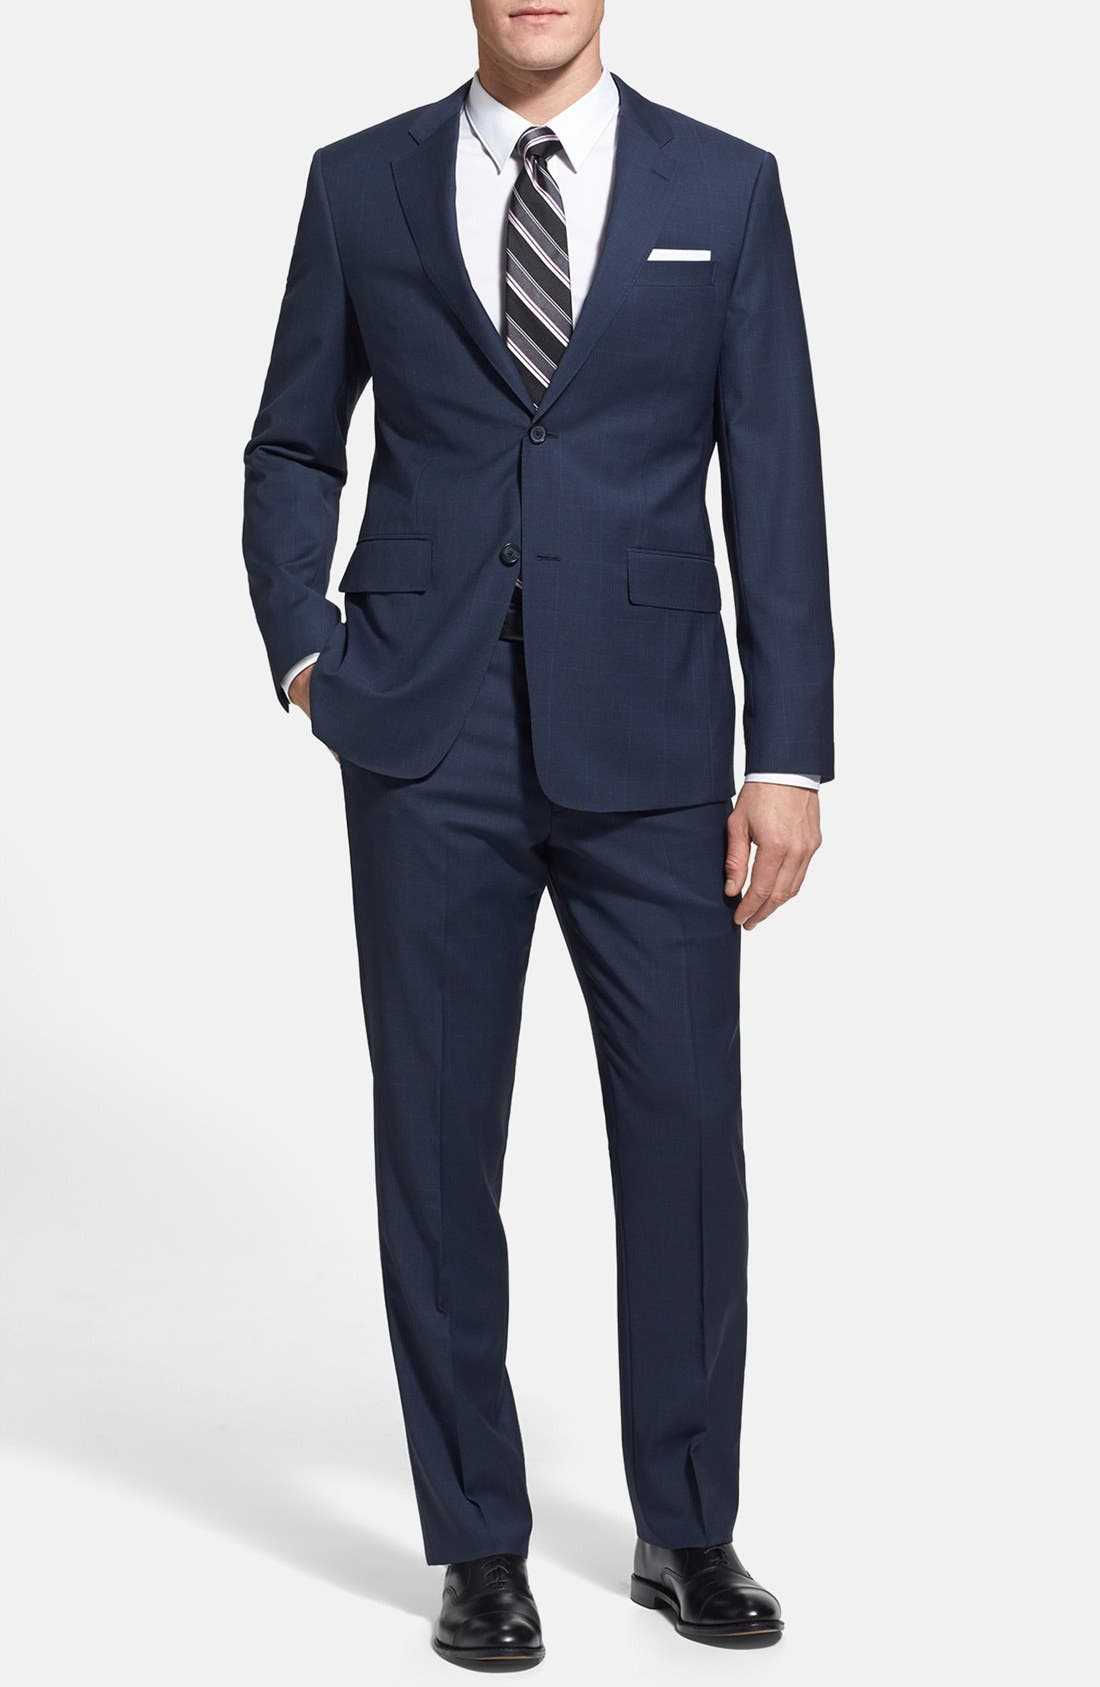 Alternate Image 1 Selected - John W. Nordstrom® Classic Fit Windowpane Wrinkle Free Travel Suit